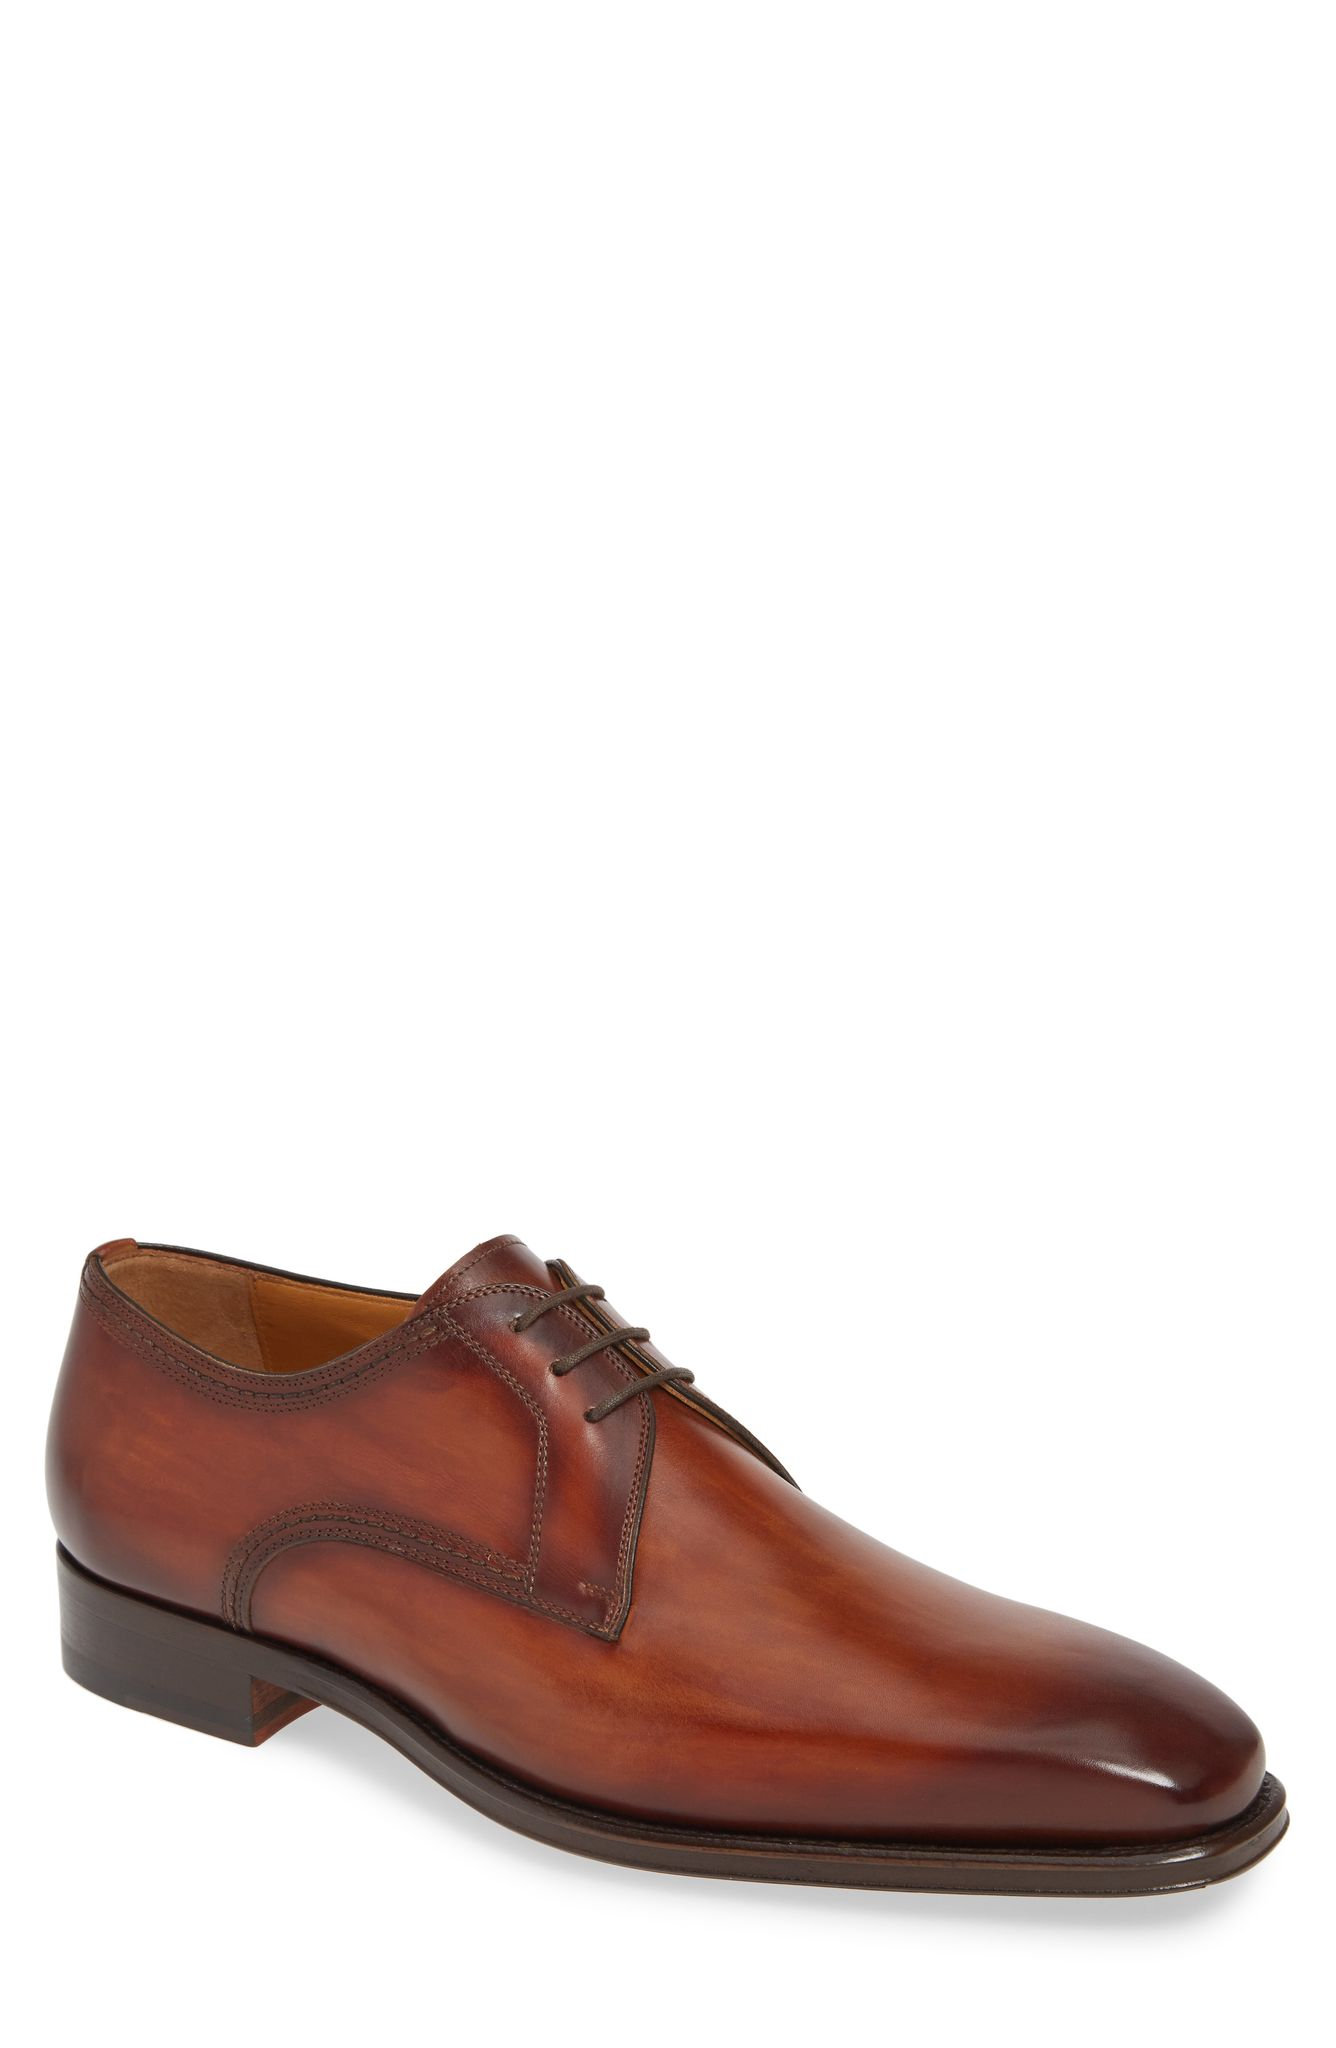 Magnanni Leon Plain Toe Oxford (noramlly $375): NOW $249.90 (Image: Nordstrom){ }